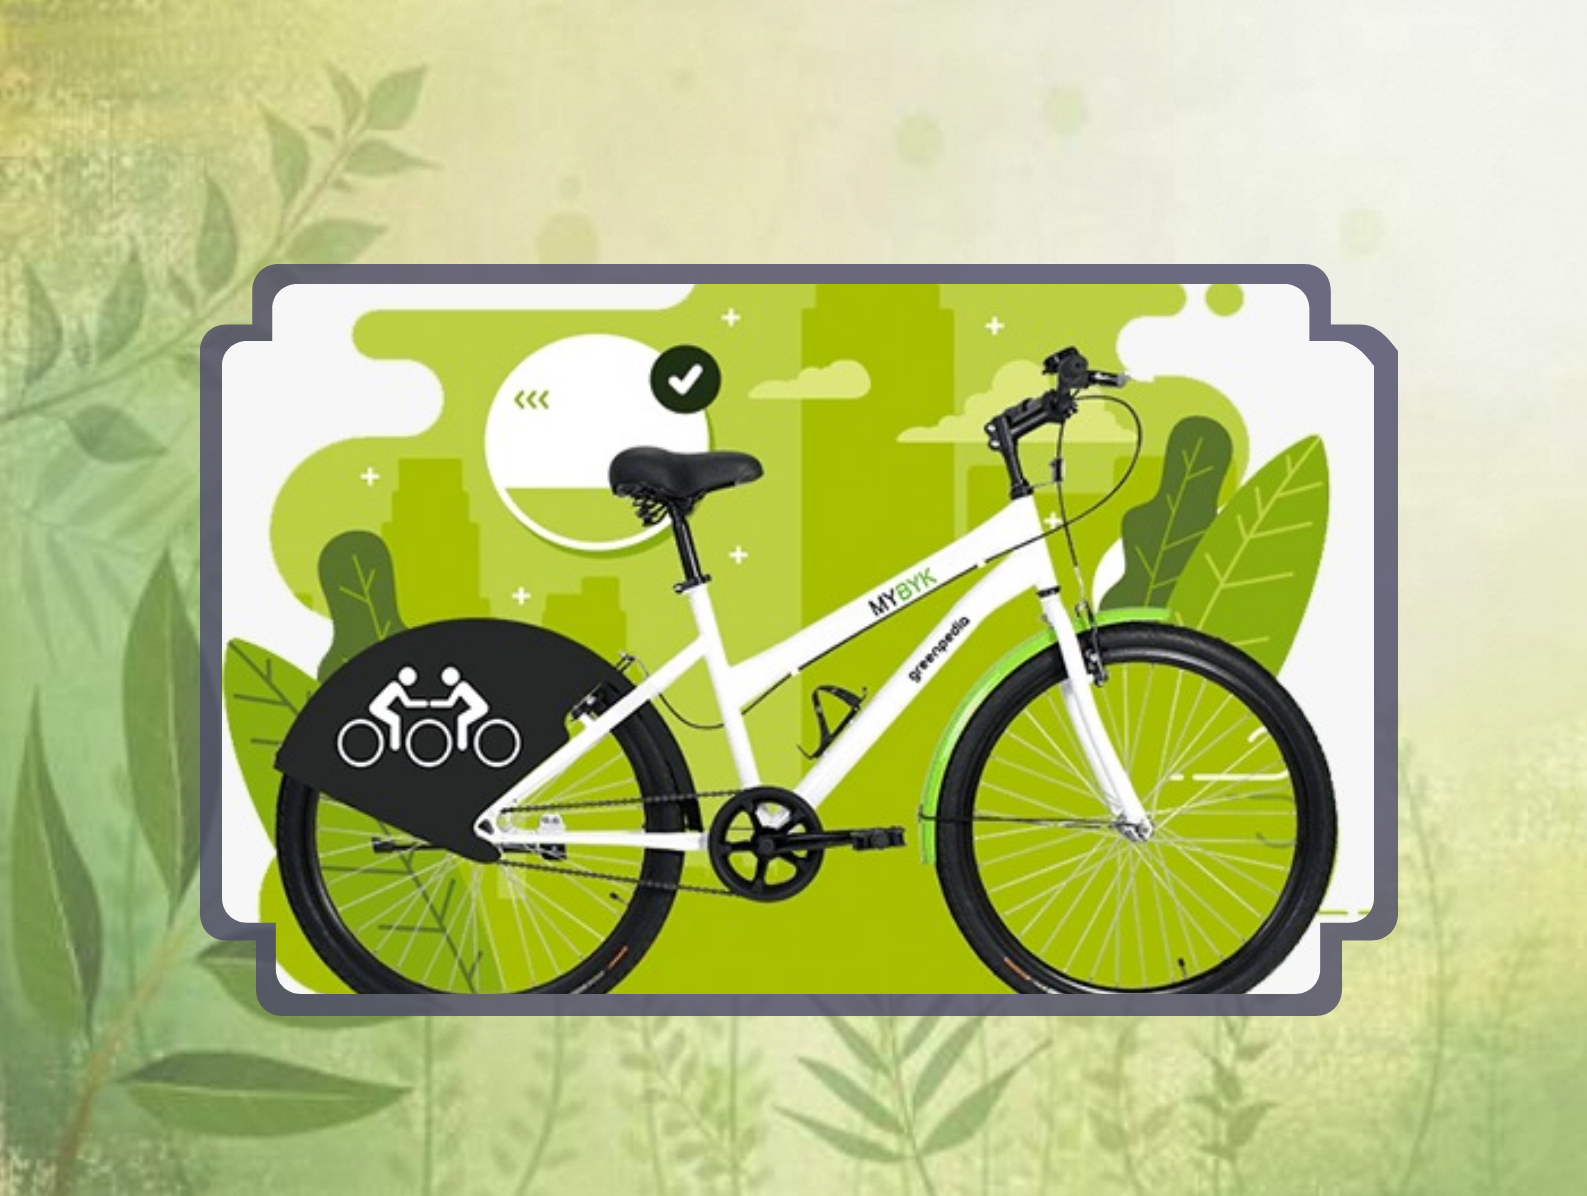 Cycle Your Way to a Fit and Eco-Friendly Life